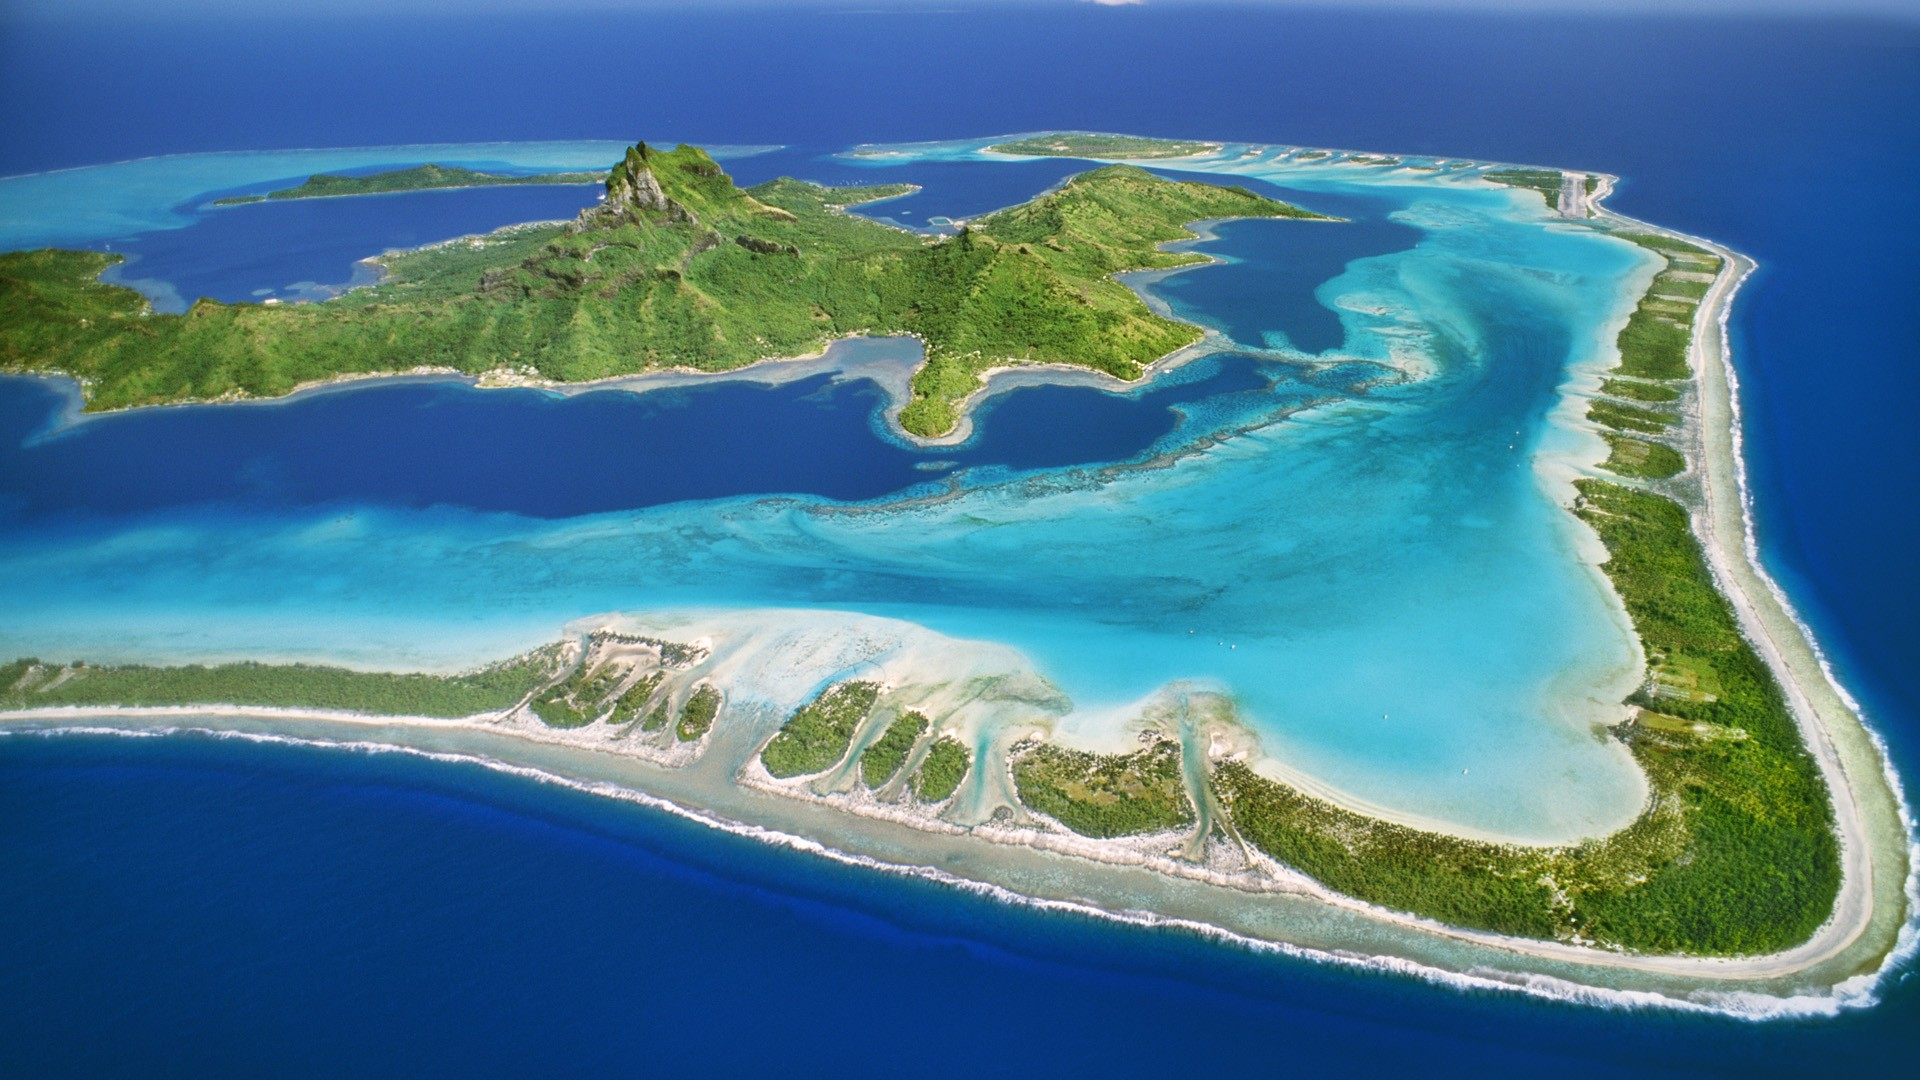 Bora Bora Island French Polynesia  city photos : Bora Bora, island in French Polynesia. [1920 x 1080] Imgur